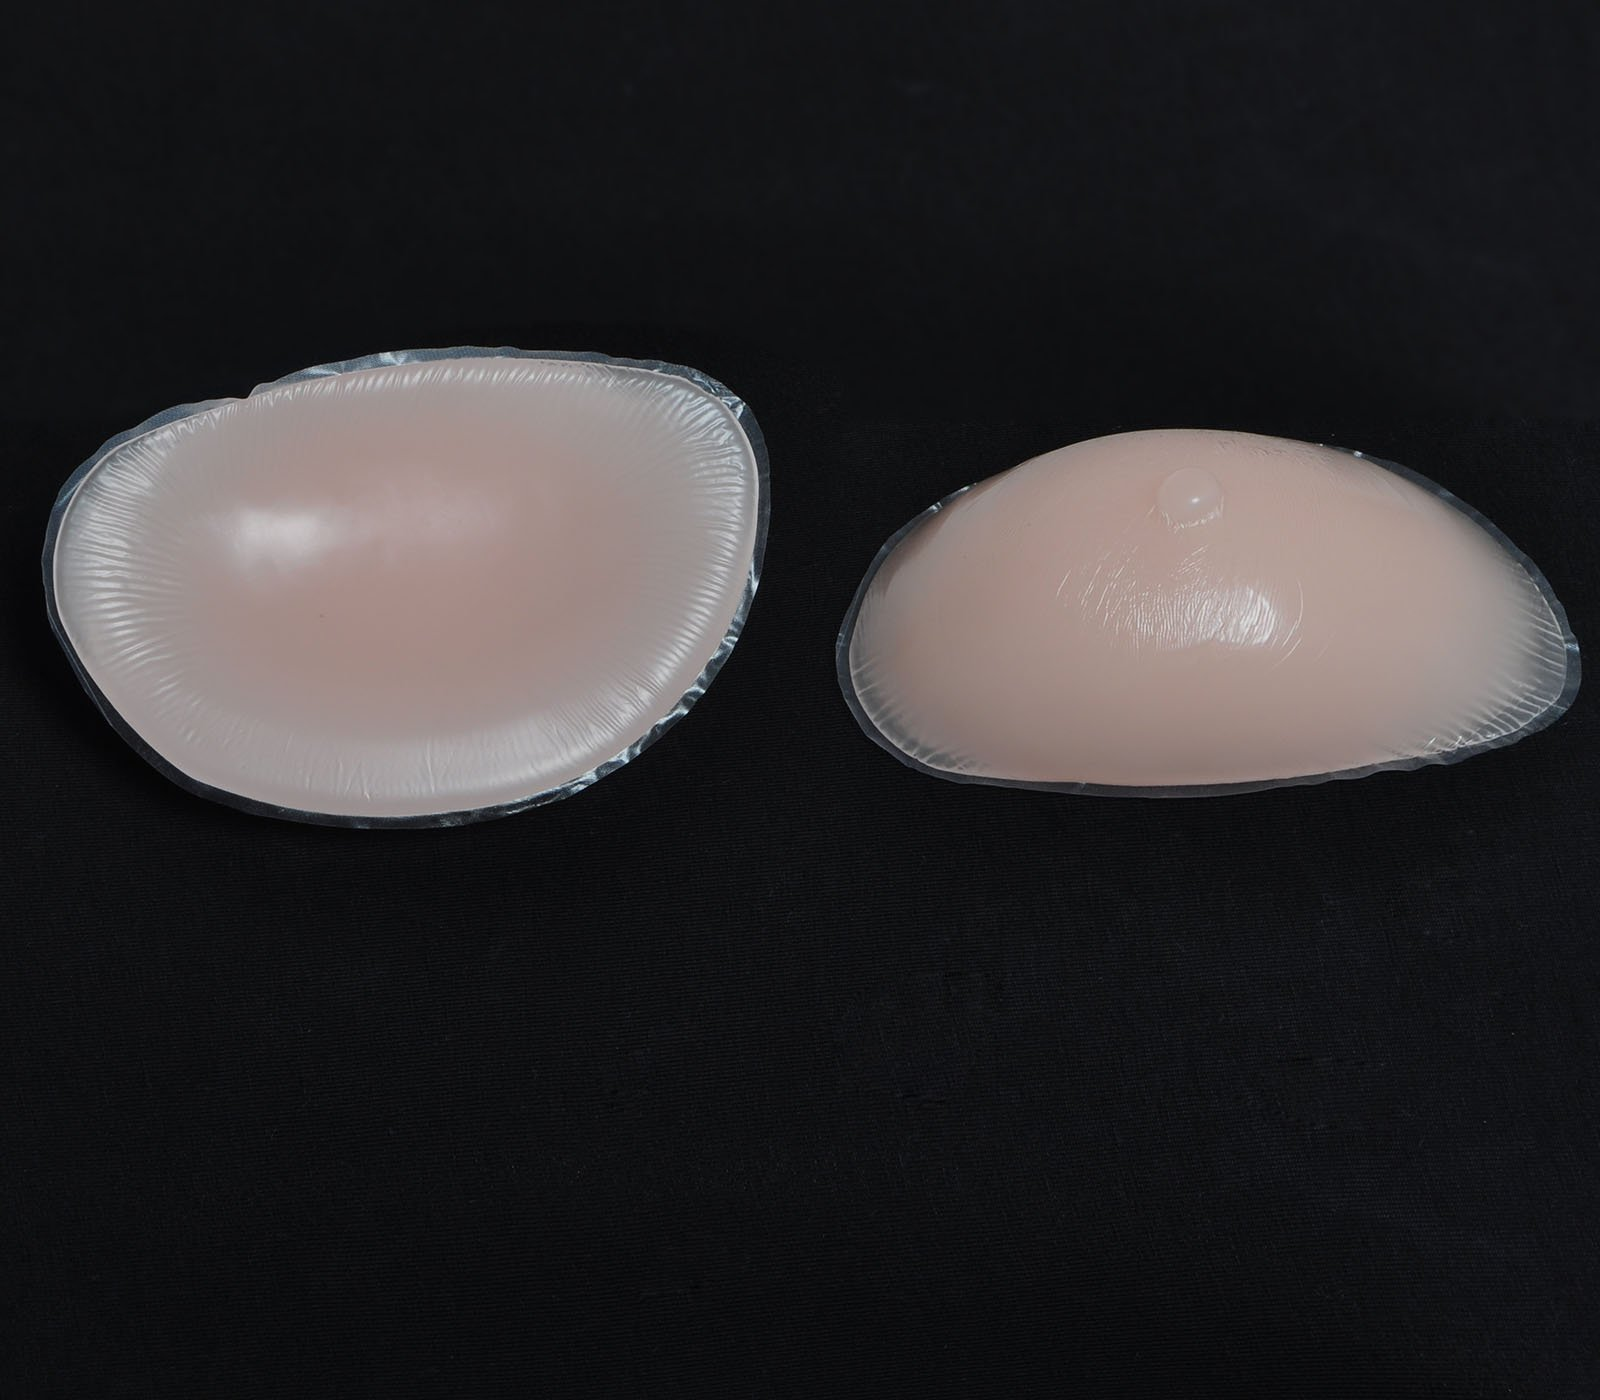 Motawator Silicone Breast Enhancers Chicken Fillets Pushup Bra Implants (34C 36B 38A)